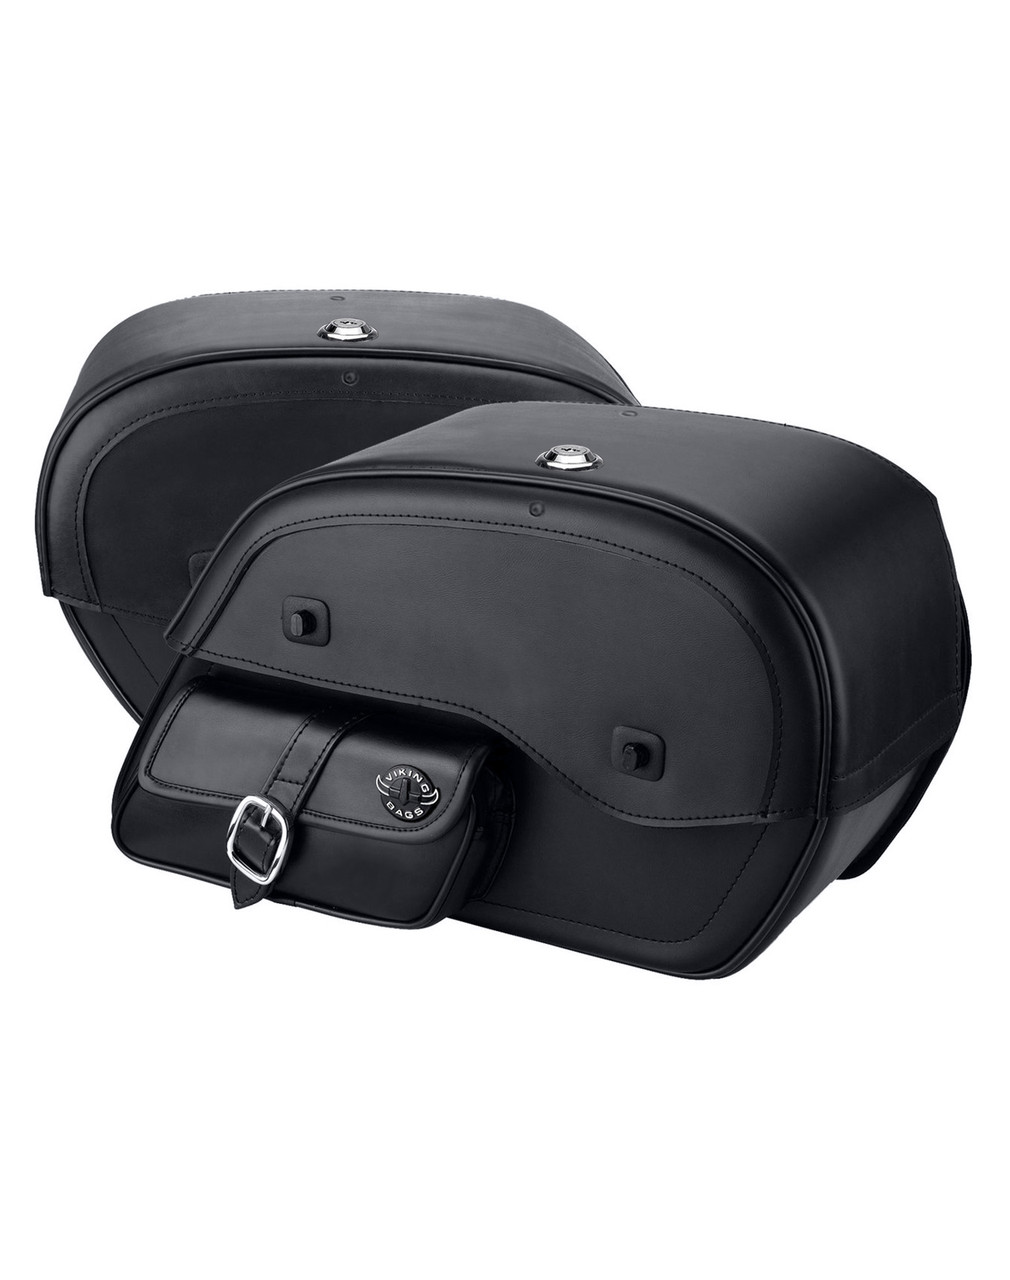 Viking Side Pocket Large Motorcycle Saddlebags For Harley Softail Springer FXSTS Both Bags View